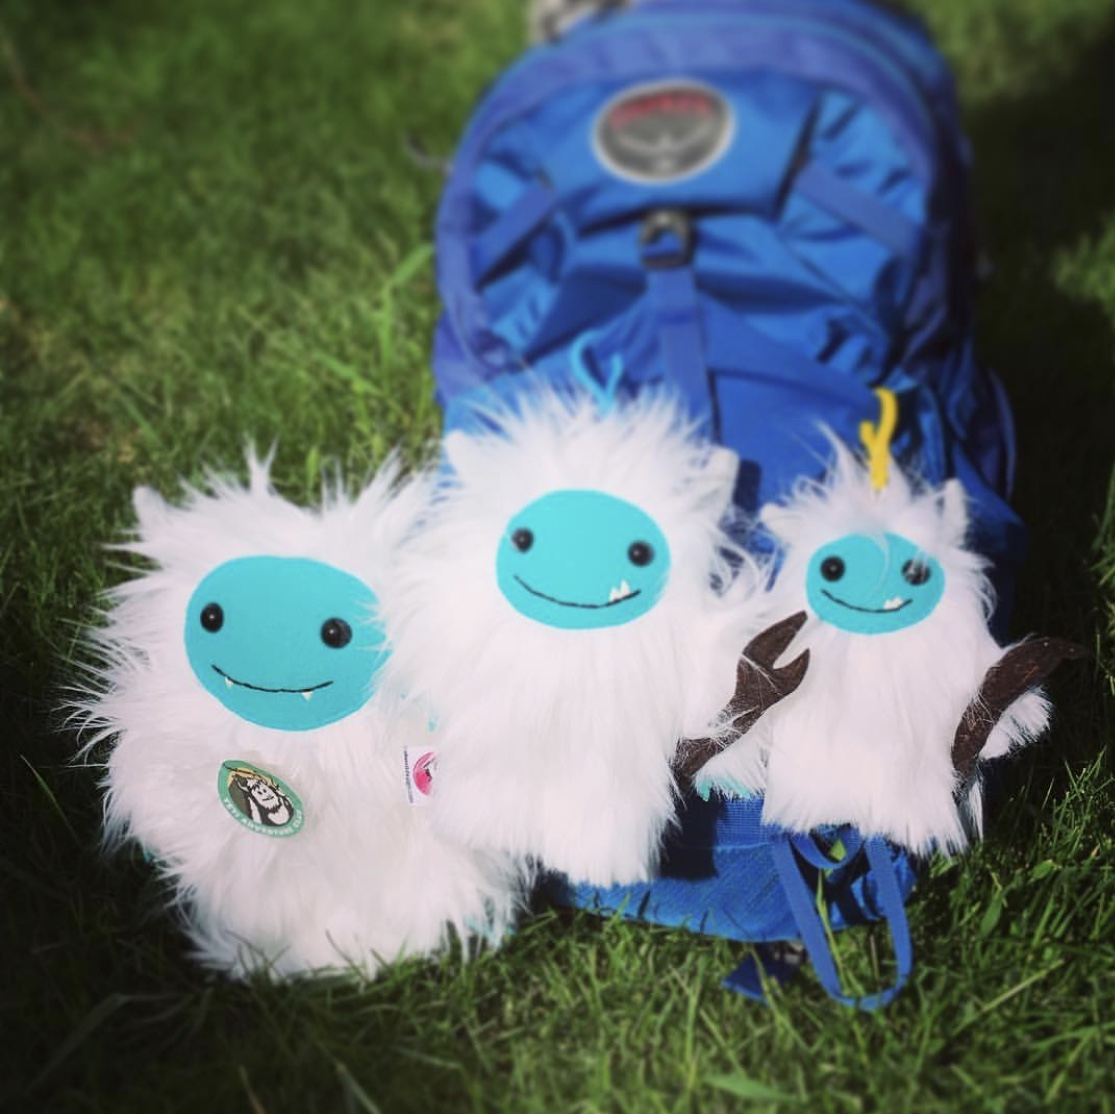 Meet Our Yetis!